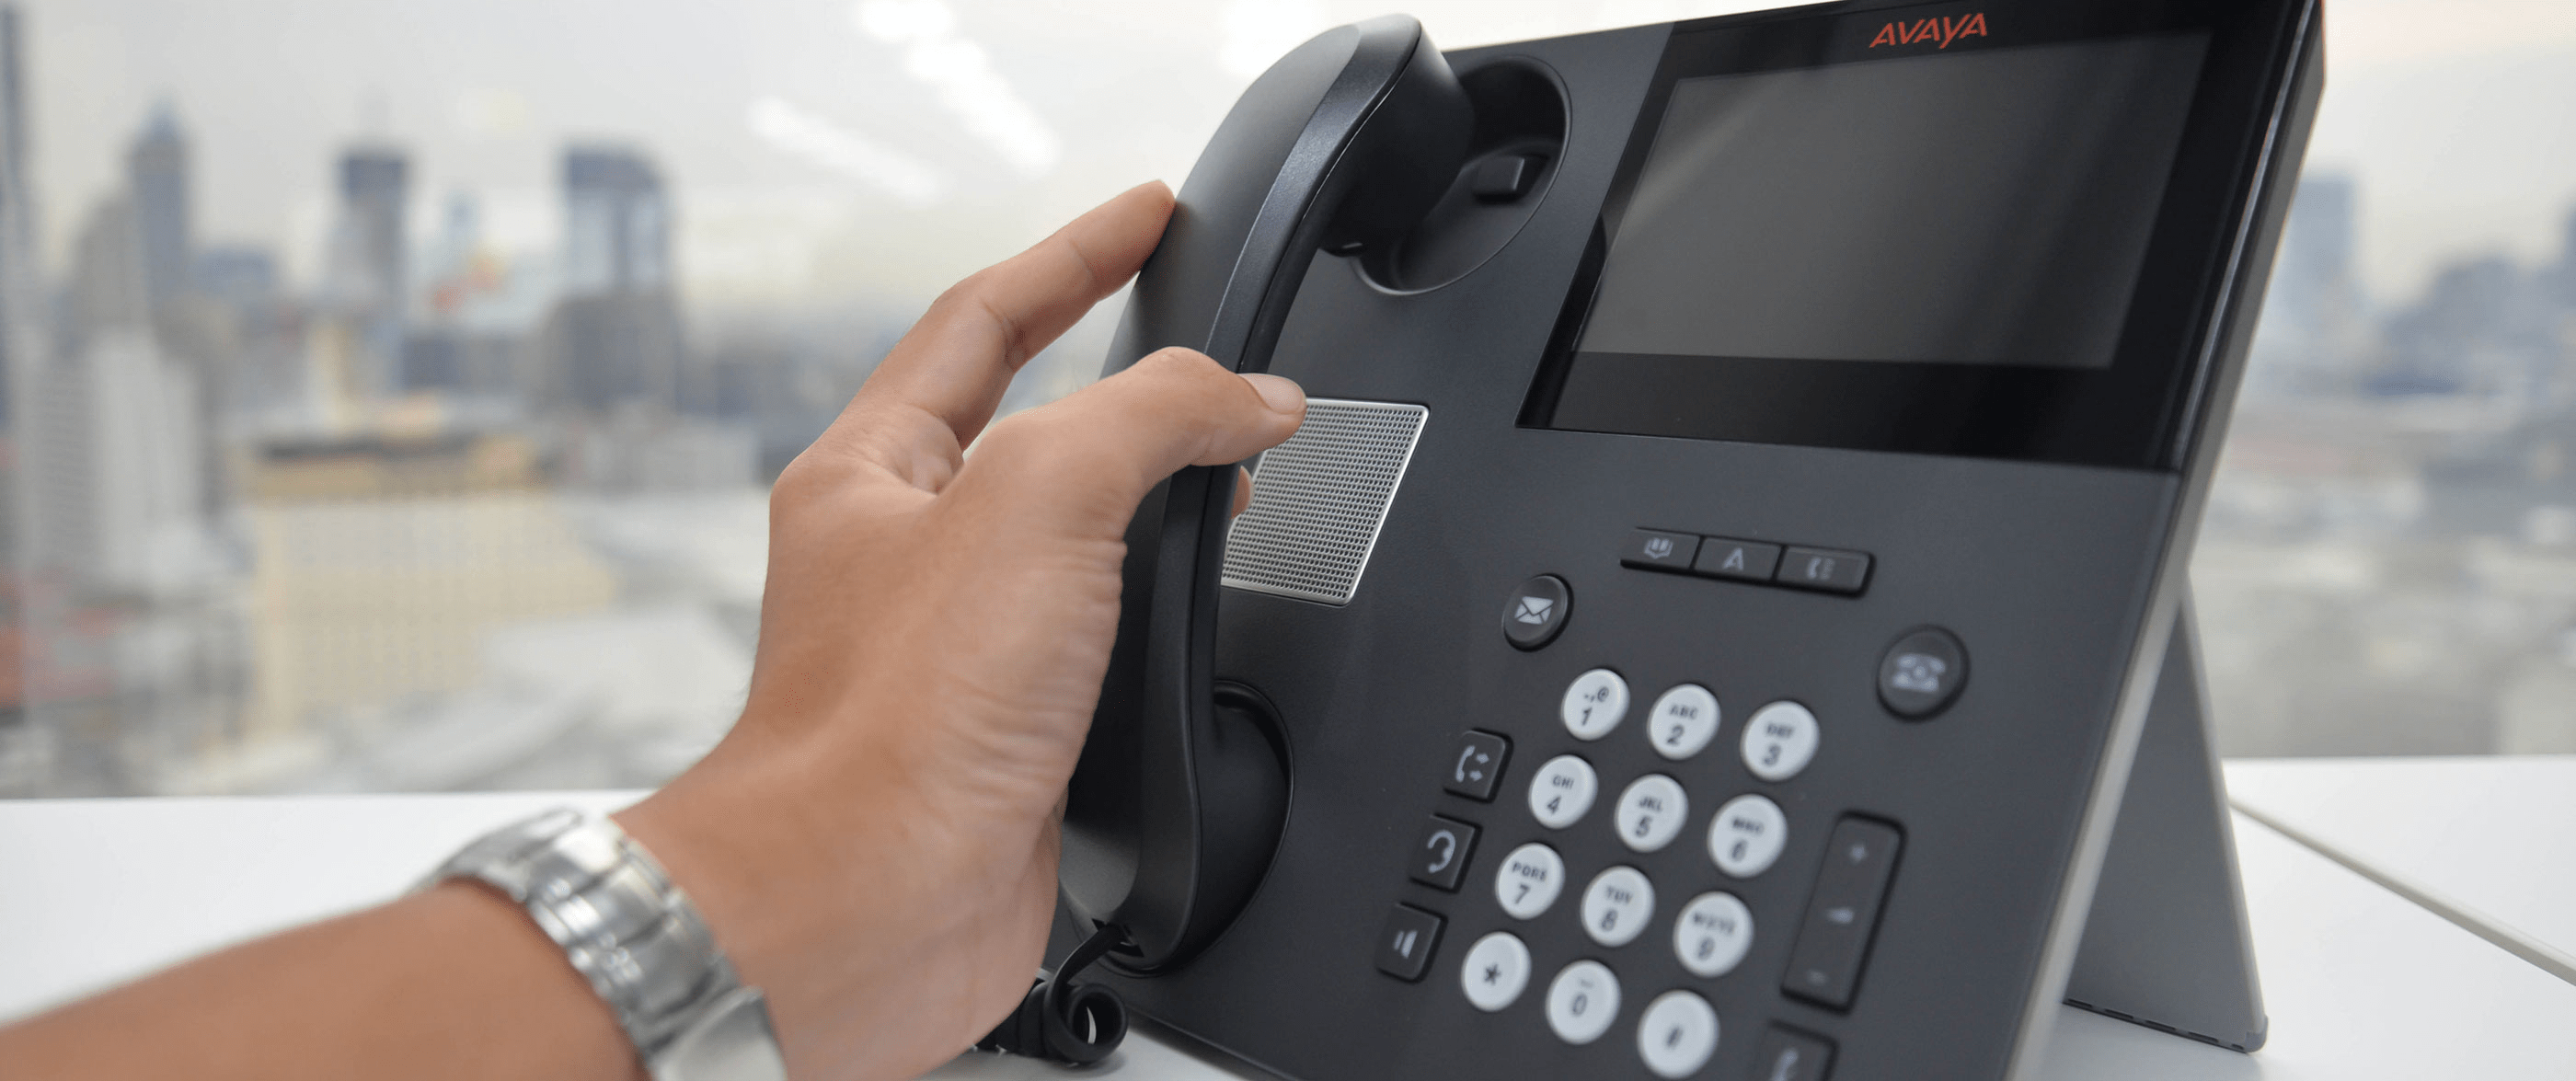 avaya-ip-phone